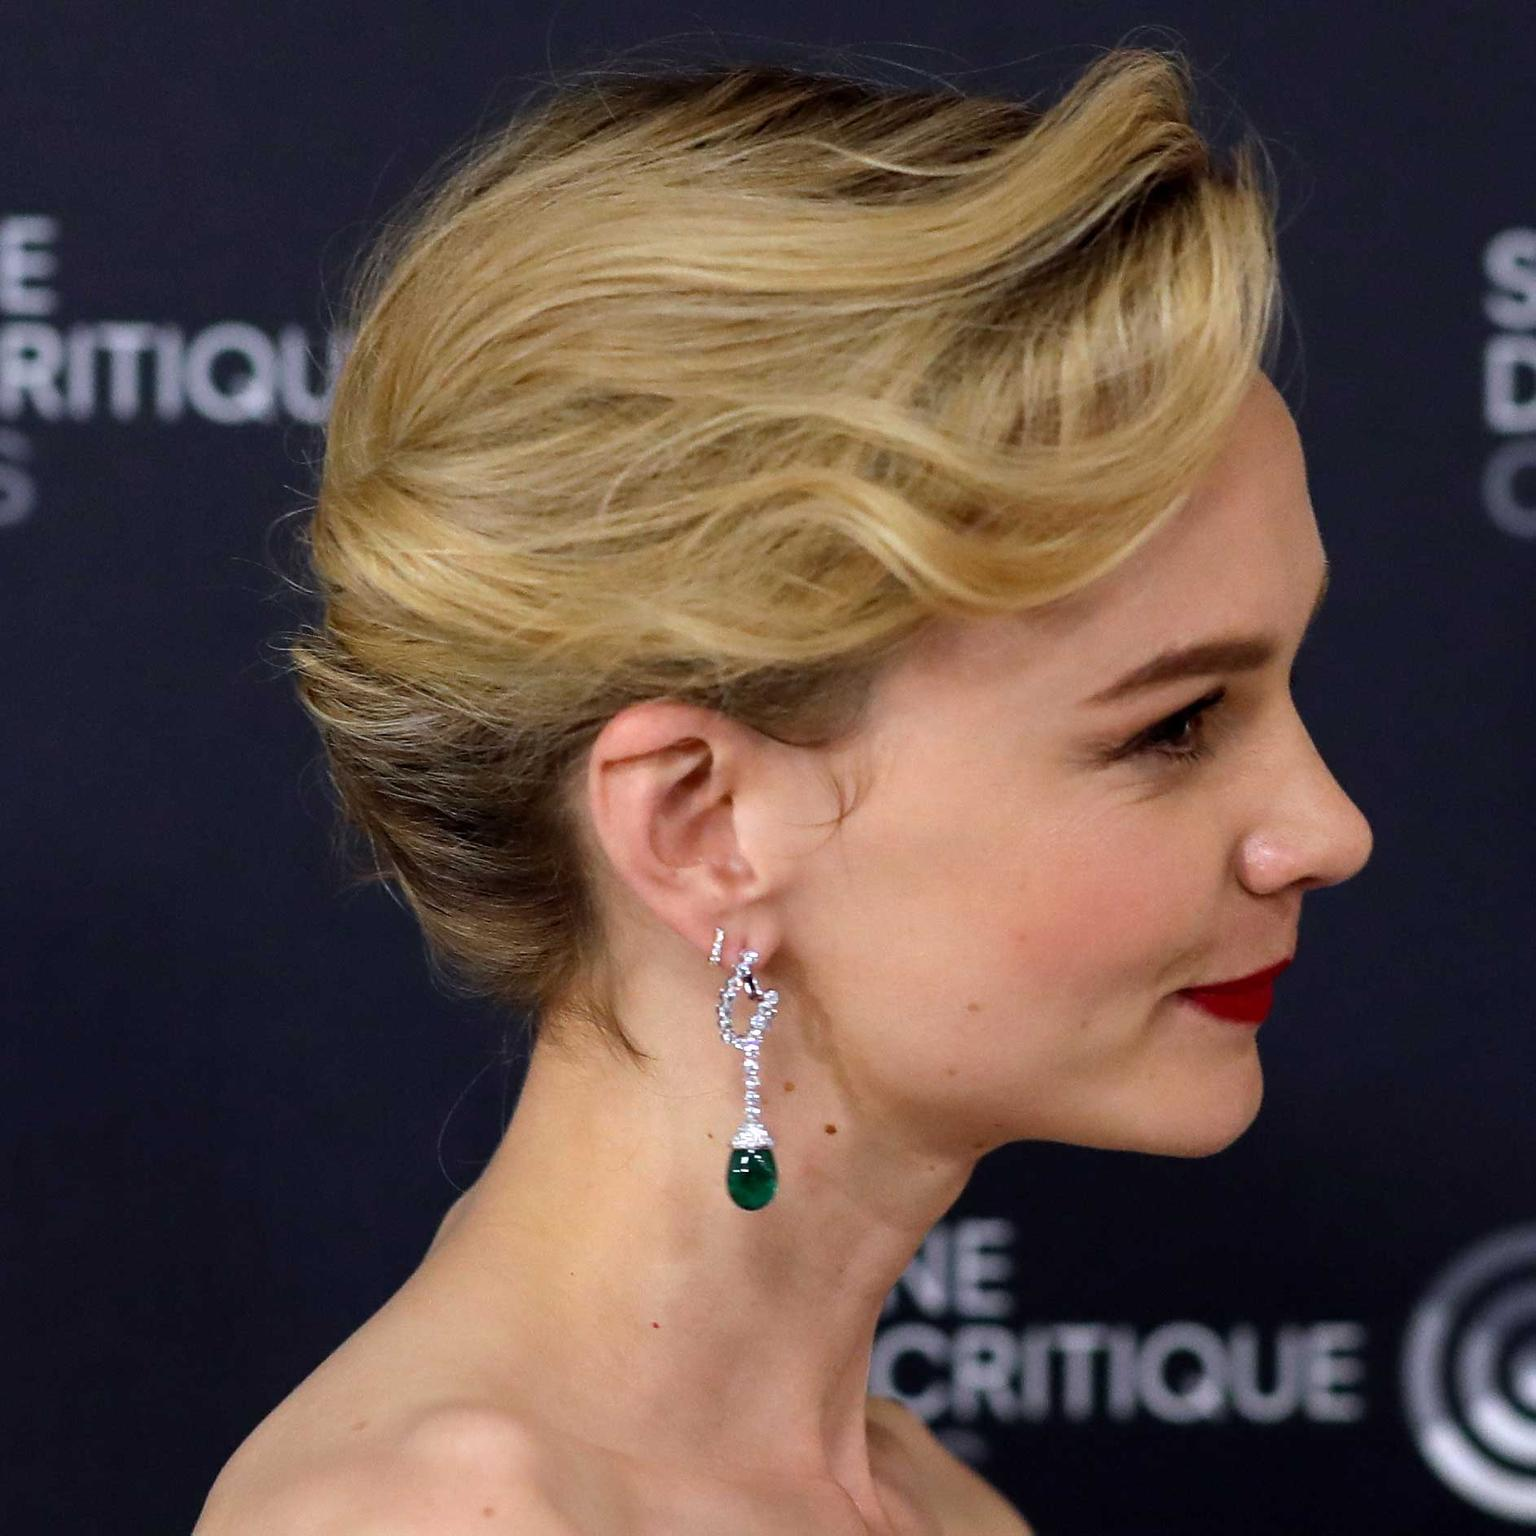 Carey Mulligan in Chaumet earrings at Cannes Film Festival 2018